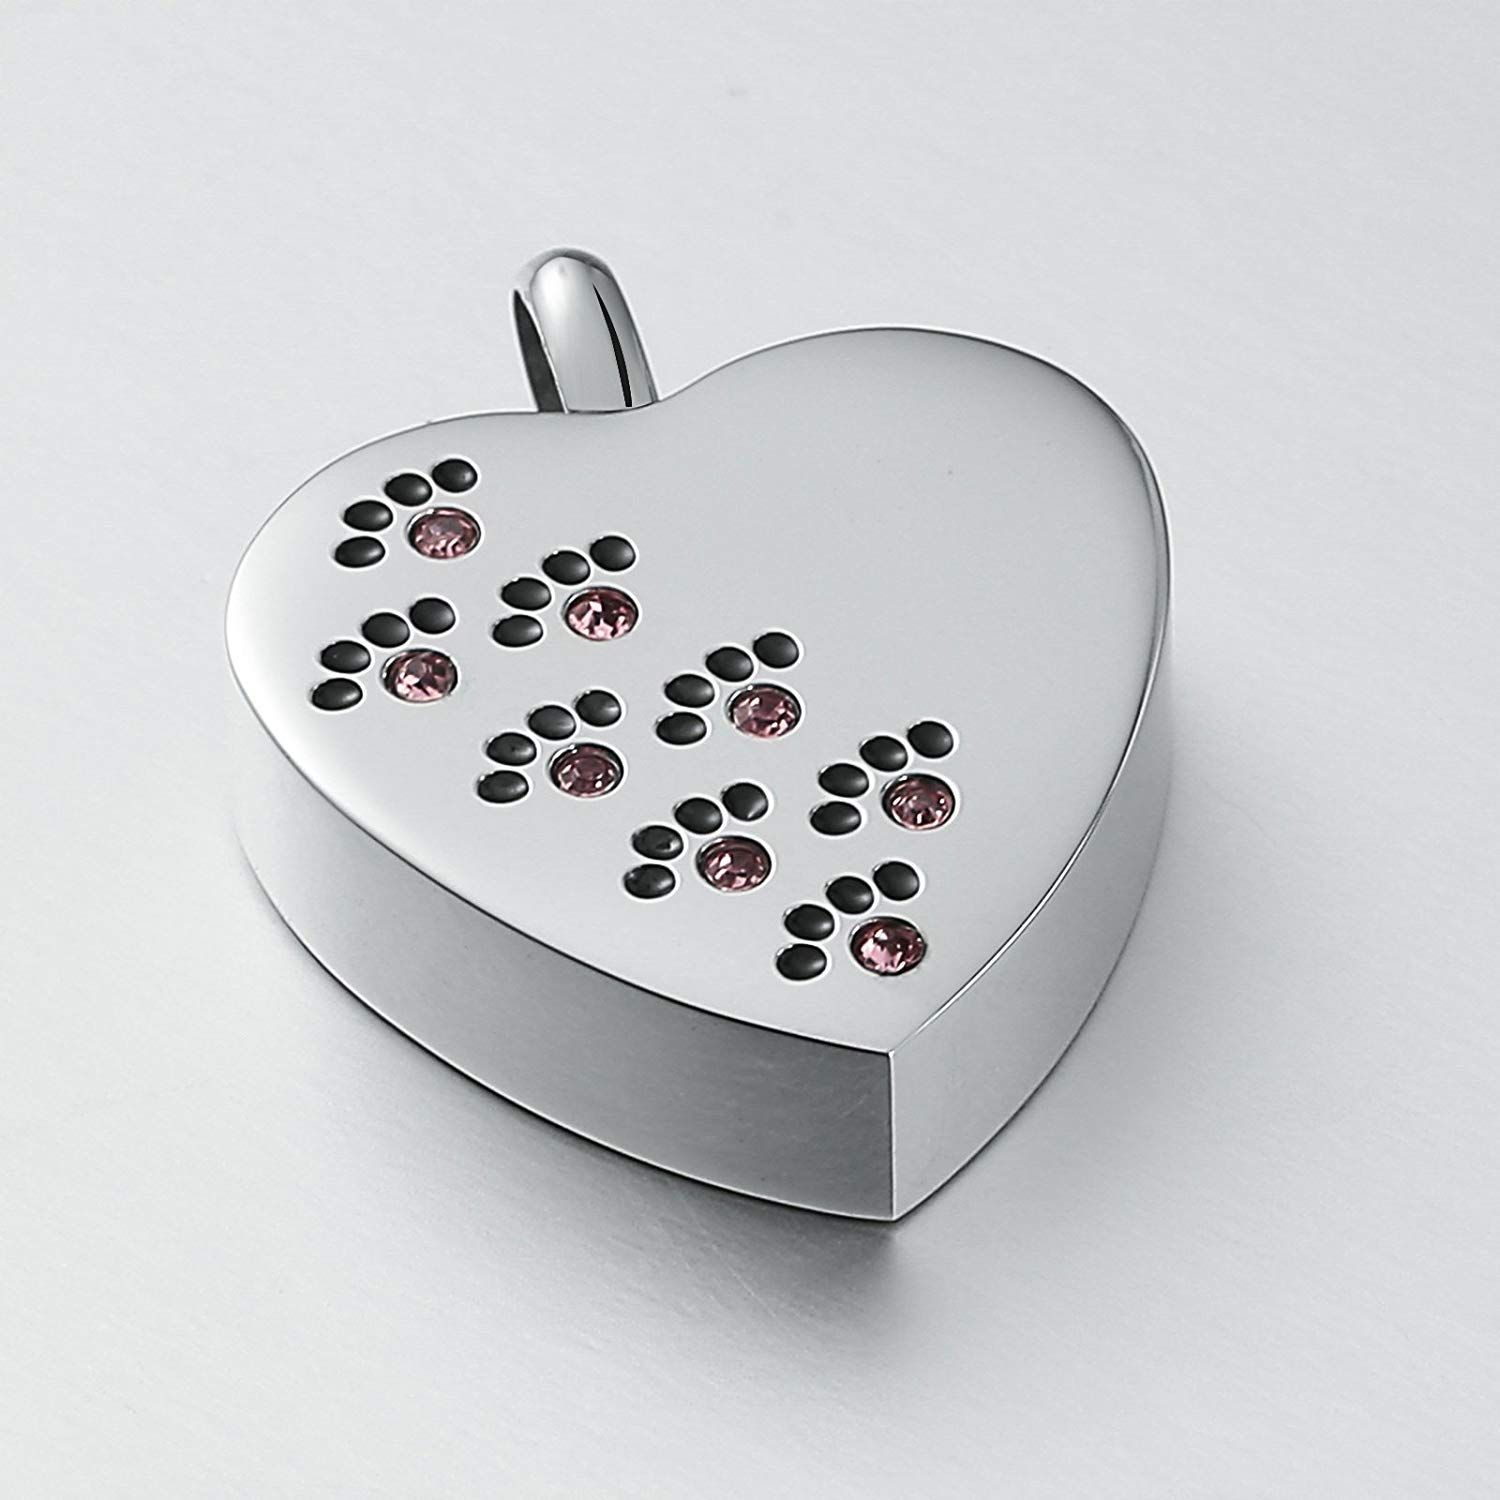 DVANIS Stainless Steel Pet Loss Memorial Urn Cremation Necklace for Ashes Keepsake Pendant Heart Crystal